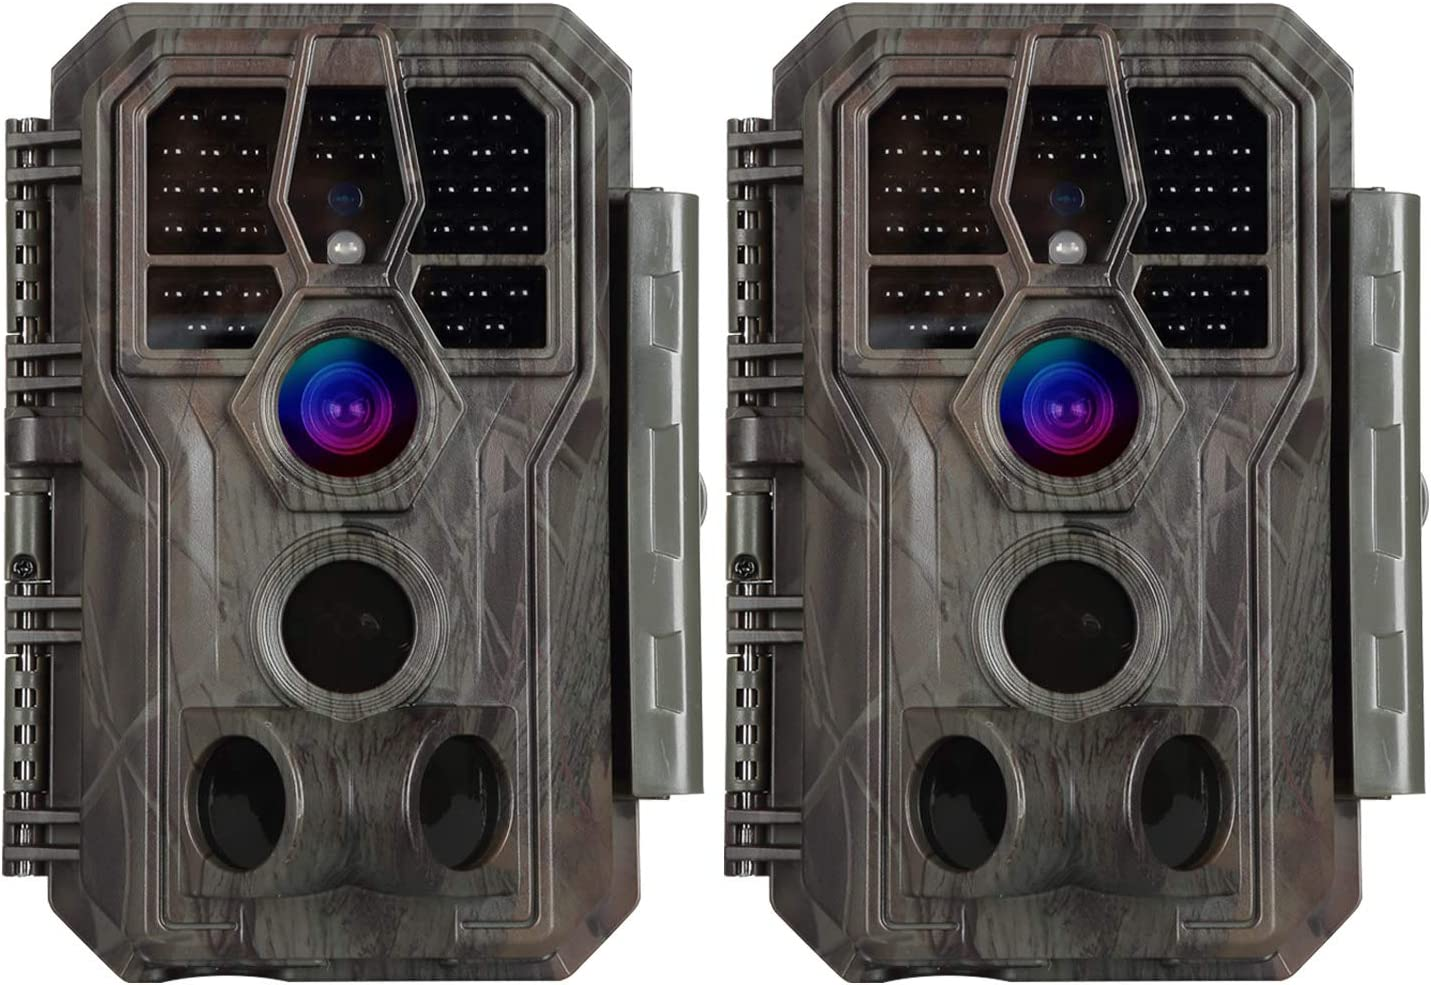 2-Pack Stealth Trail Game Cameras New item 24MP 100ft Photo N Video Selling and selling 1296P